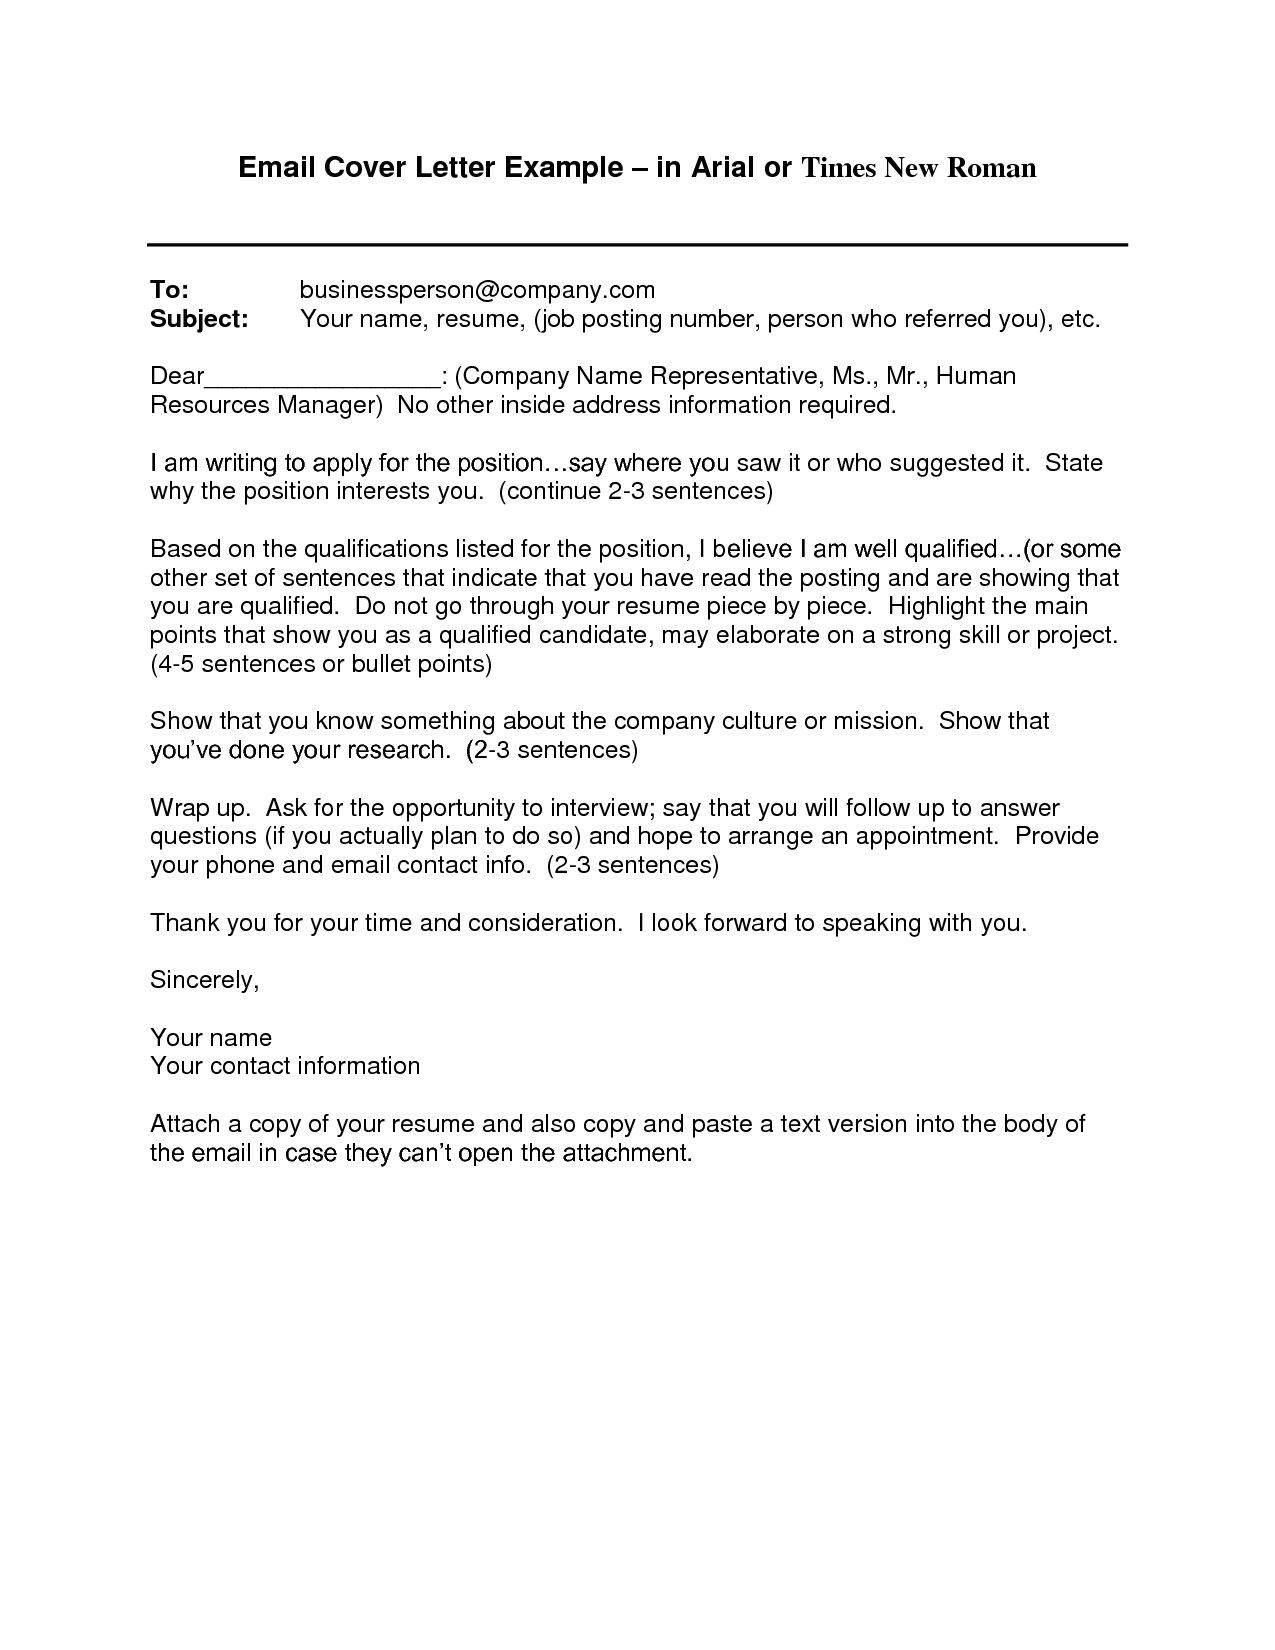 Email Cover Letter Template | Employment | Cover letter ...